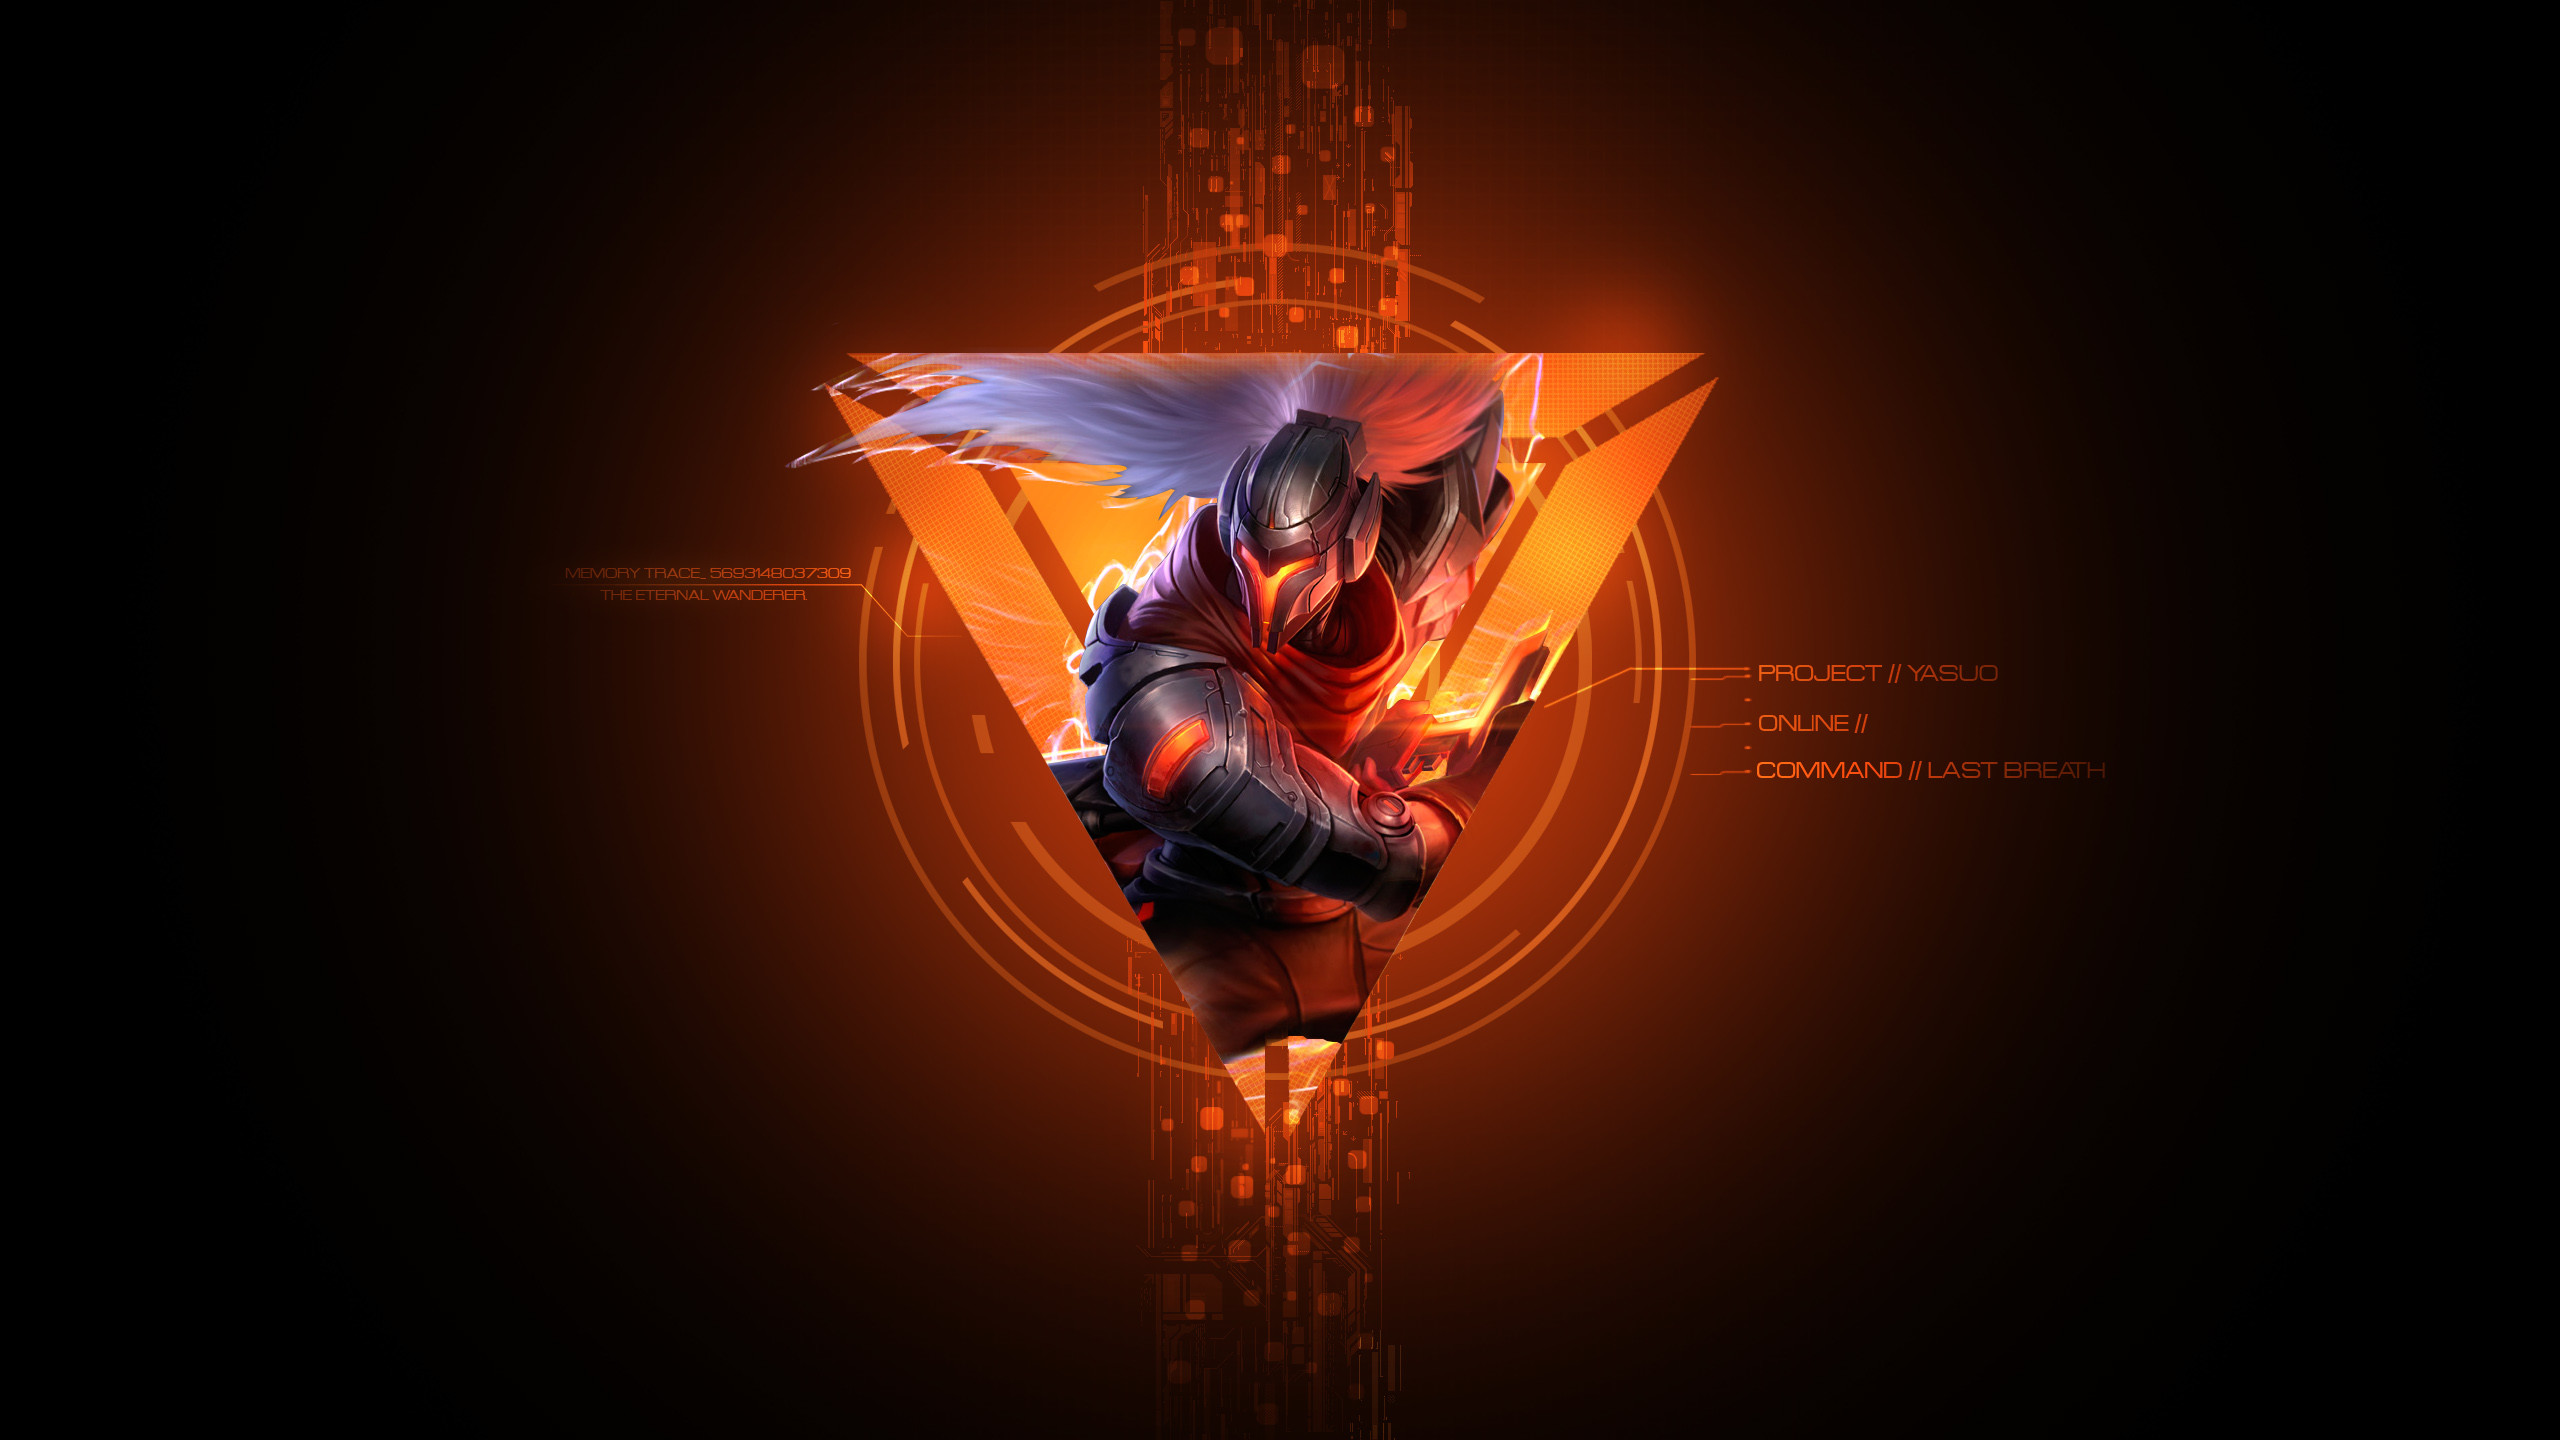 2560x1440 PROJECT Yasuo by syraelx HD Wallpaper Fan Art Artwork League of Legends lol